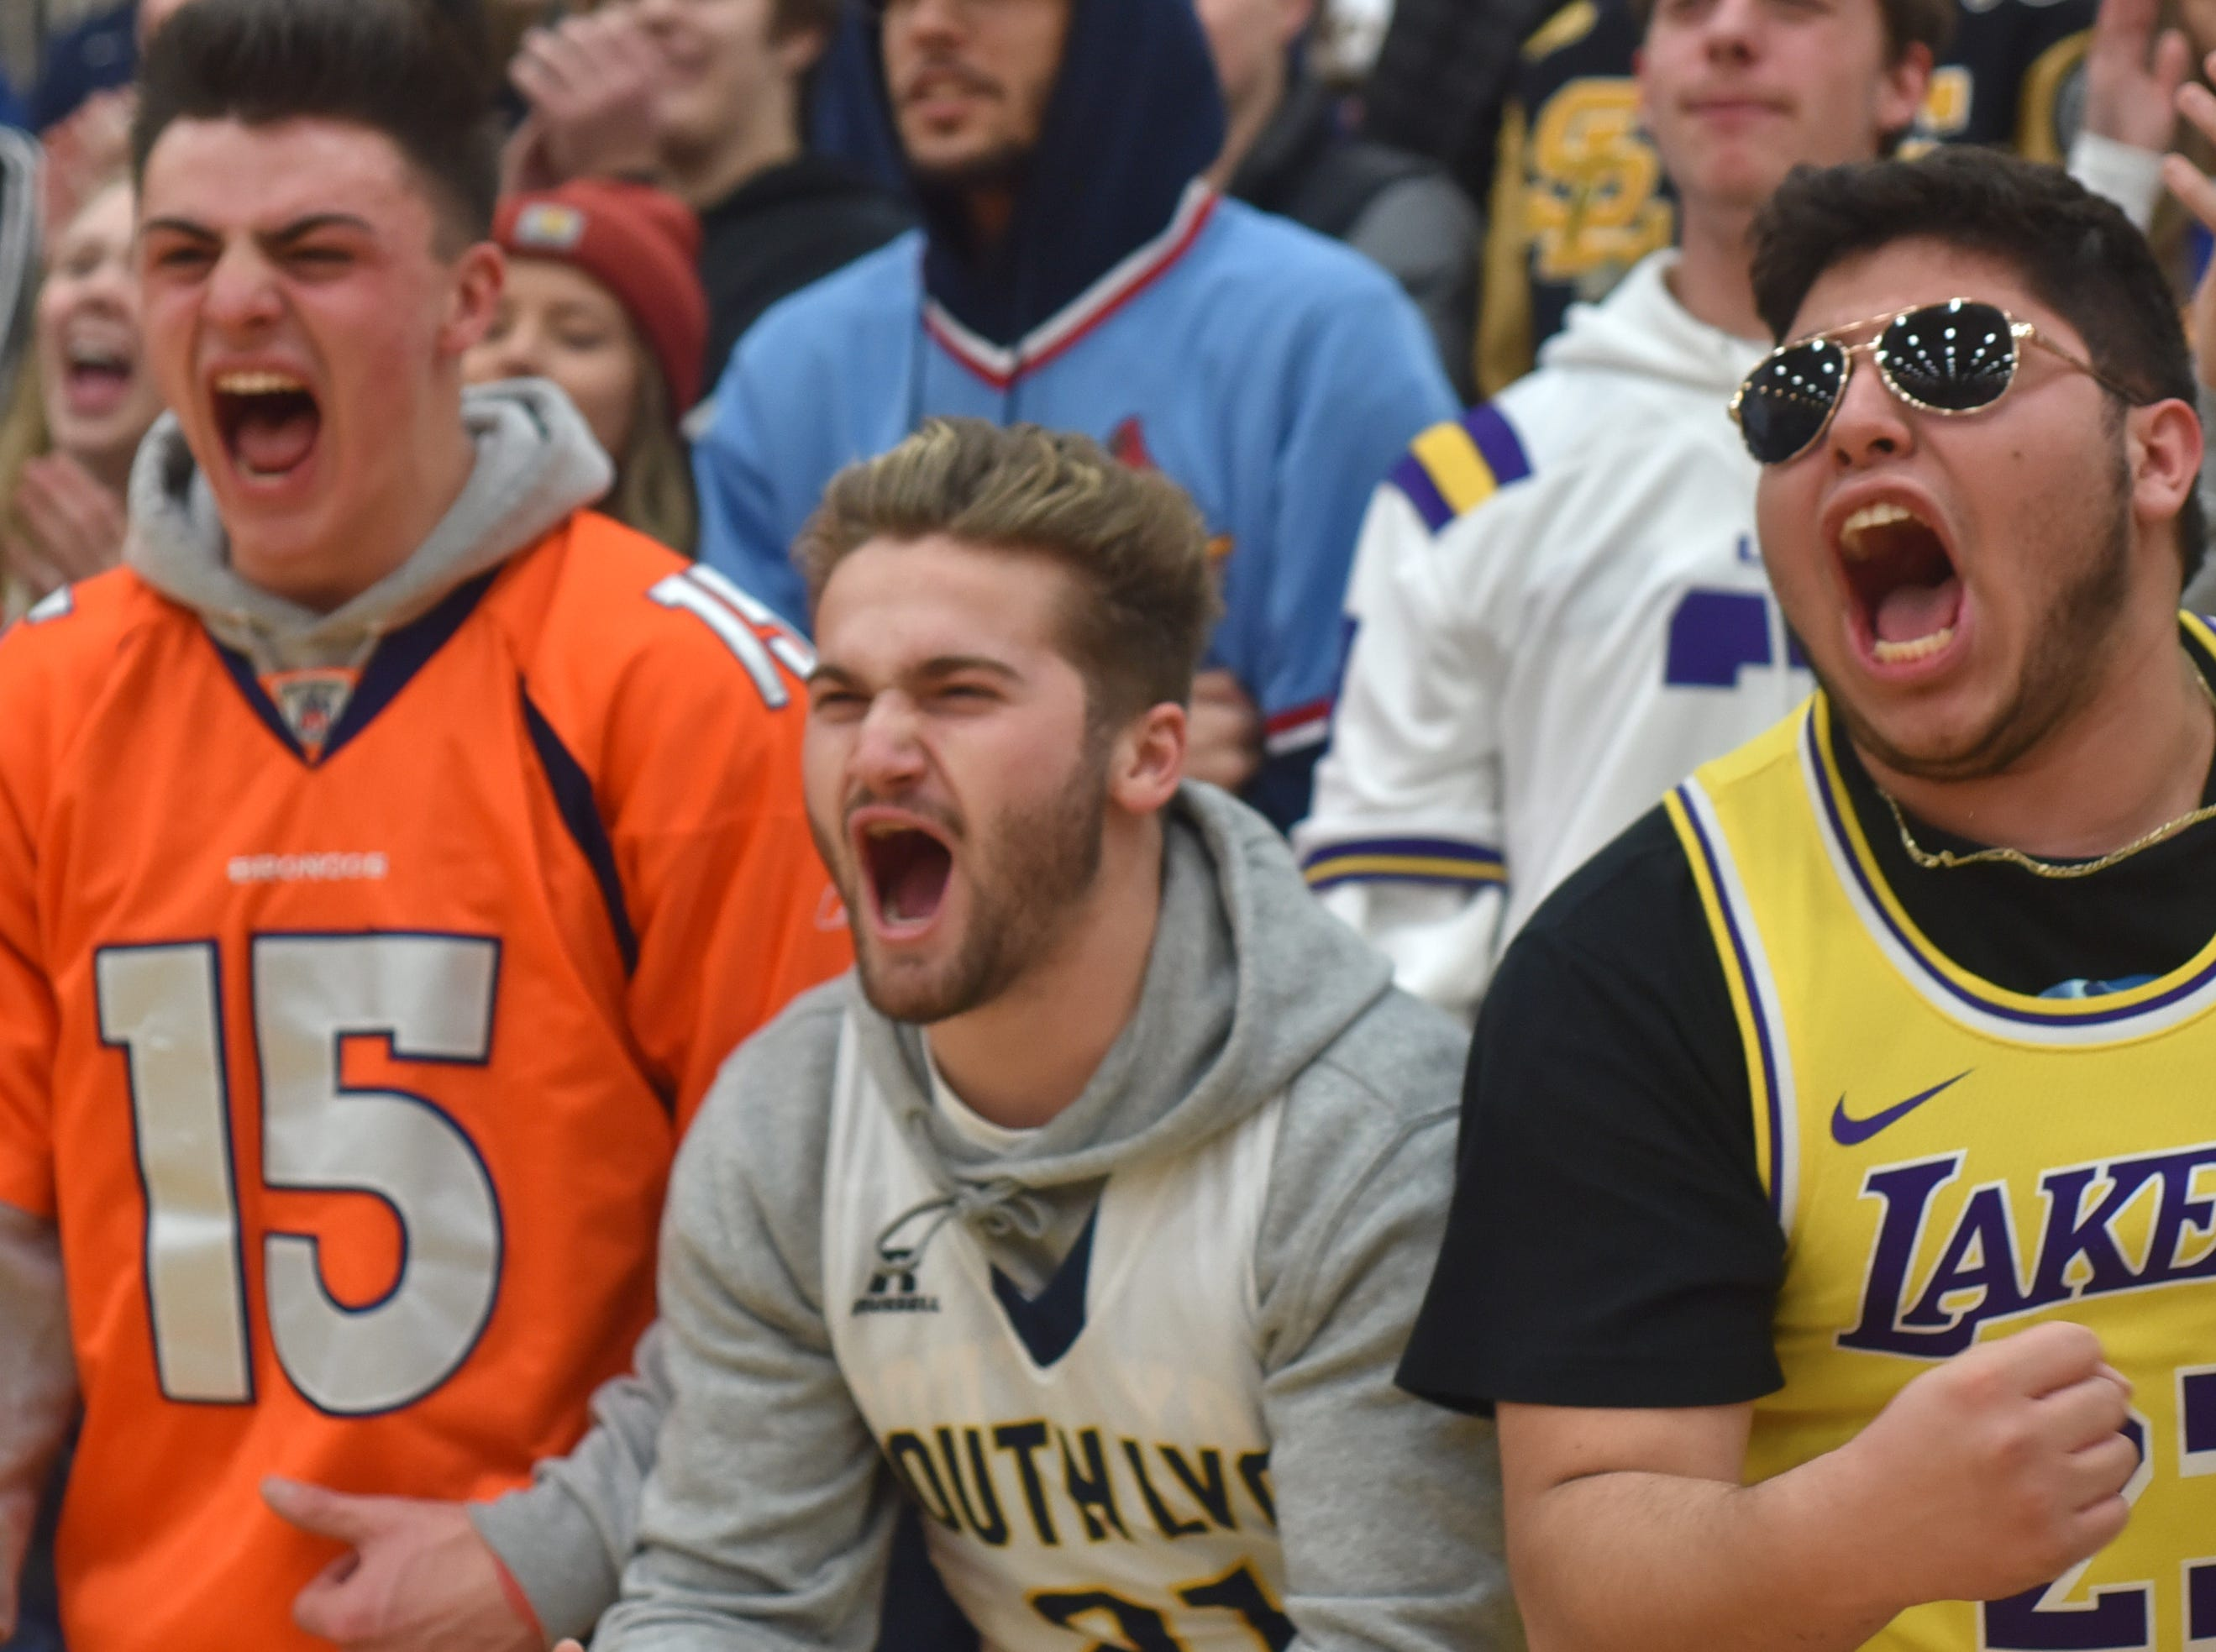 South Lyon students react to a basket by their team.